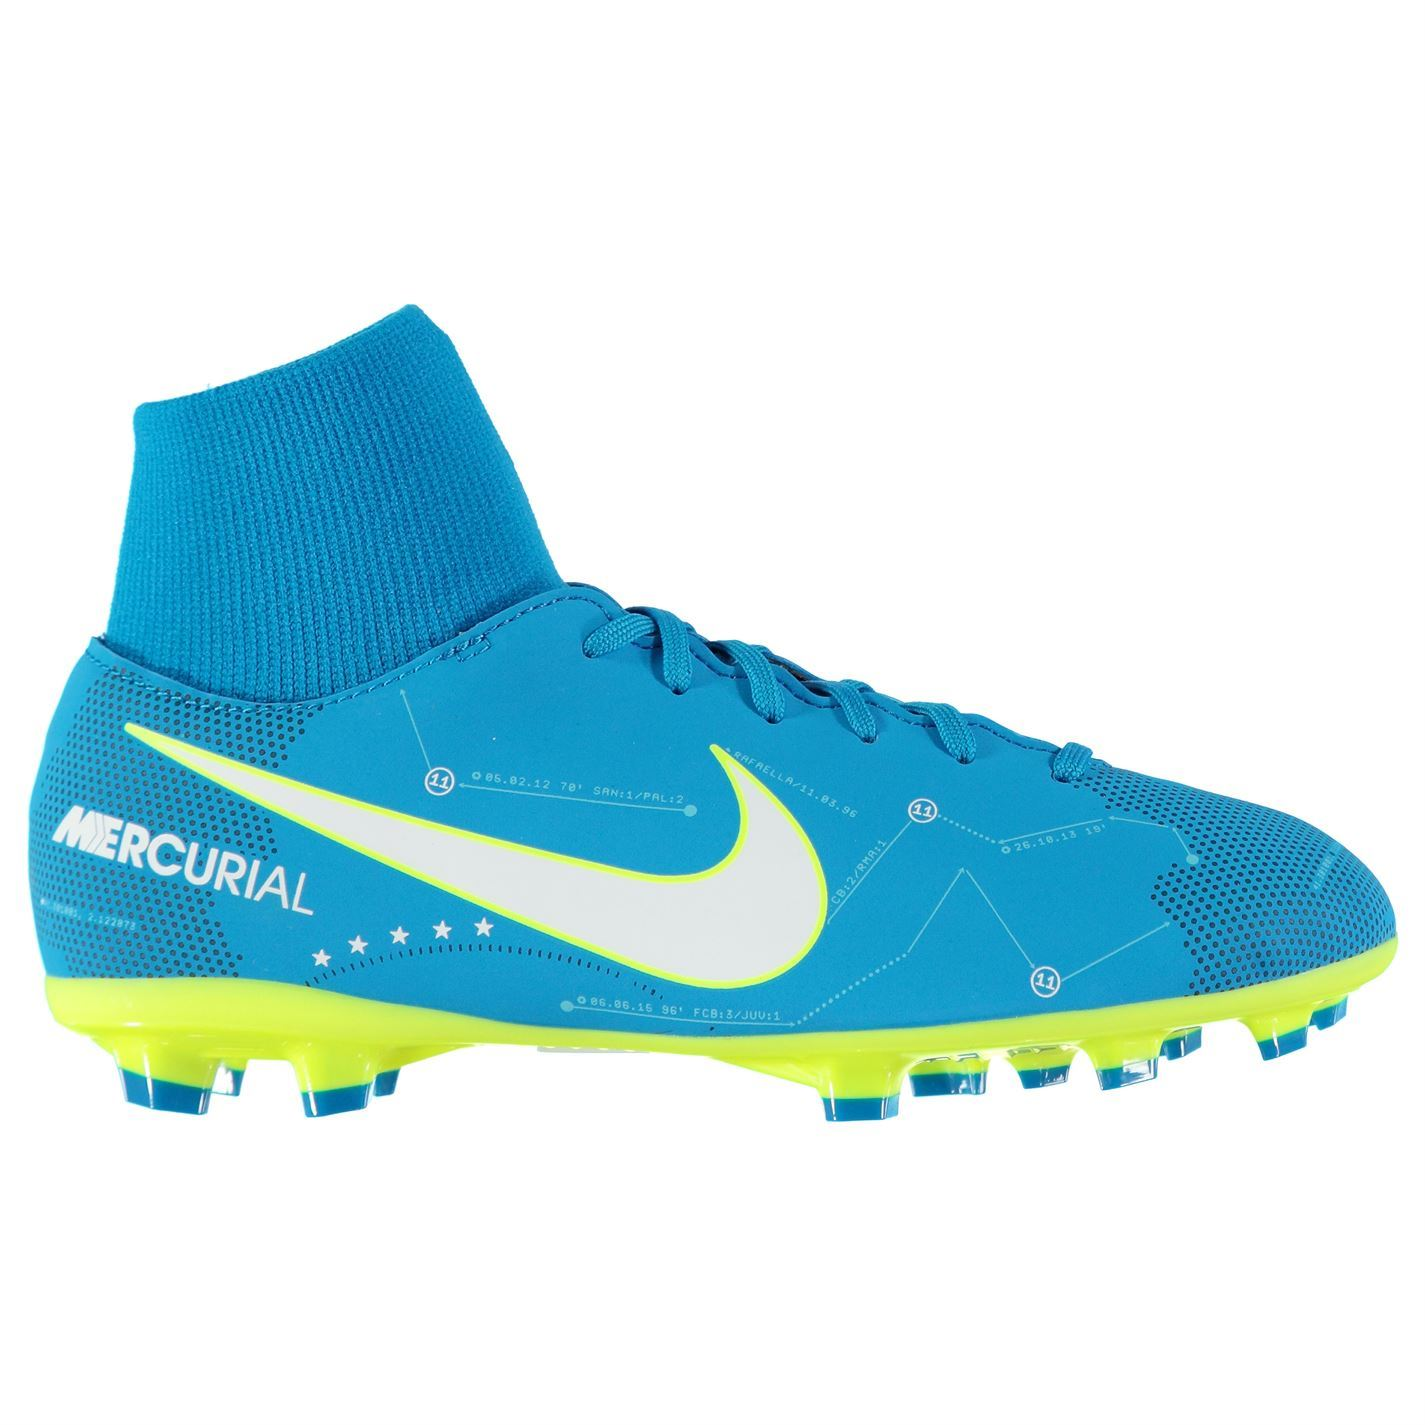 ... Nike Mercurial Victory Neymar Jr FG FG Football Boots Juniors Blue  Soccer Shoes ... 7c7b80f1f3d49